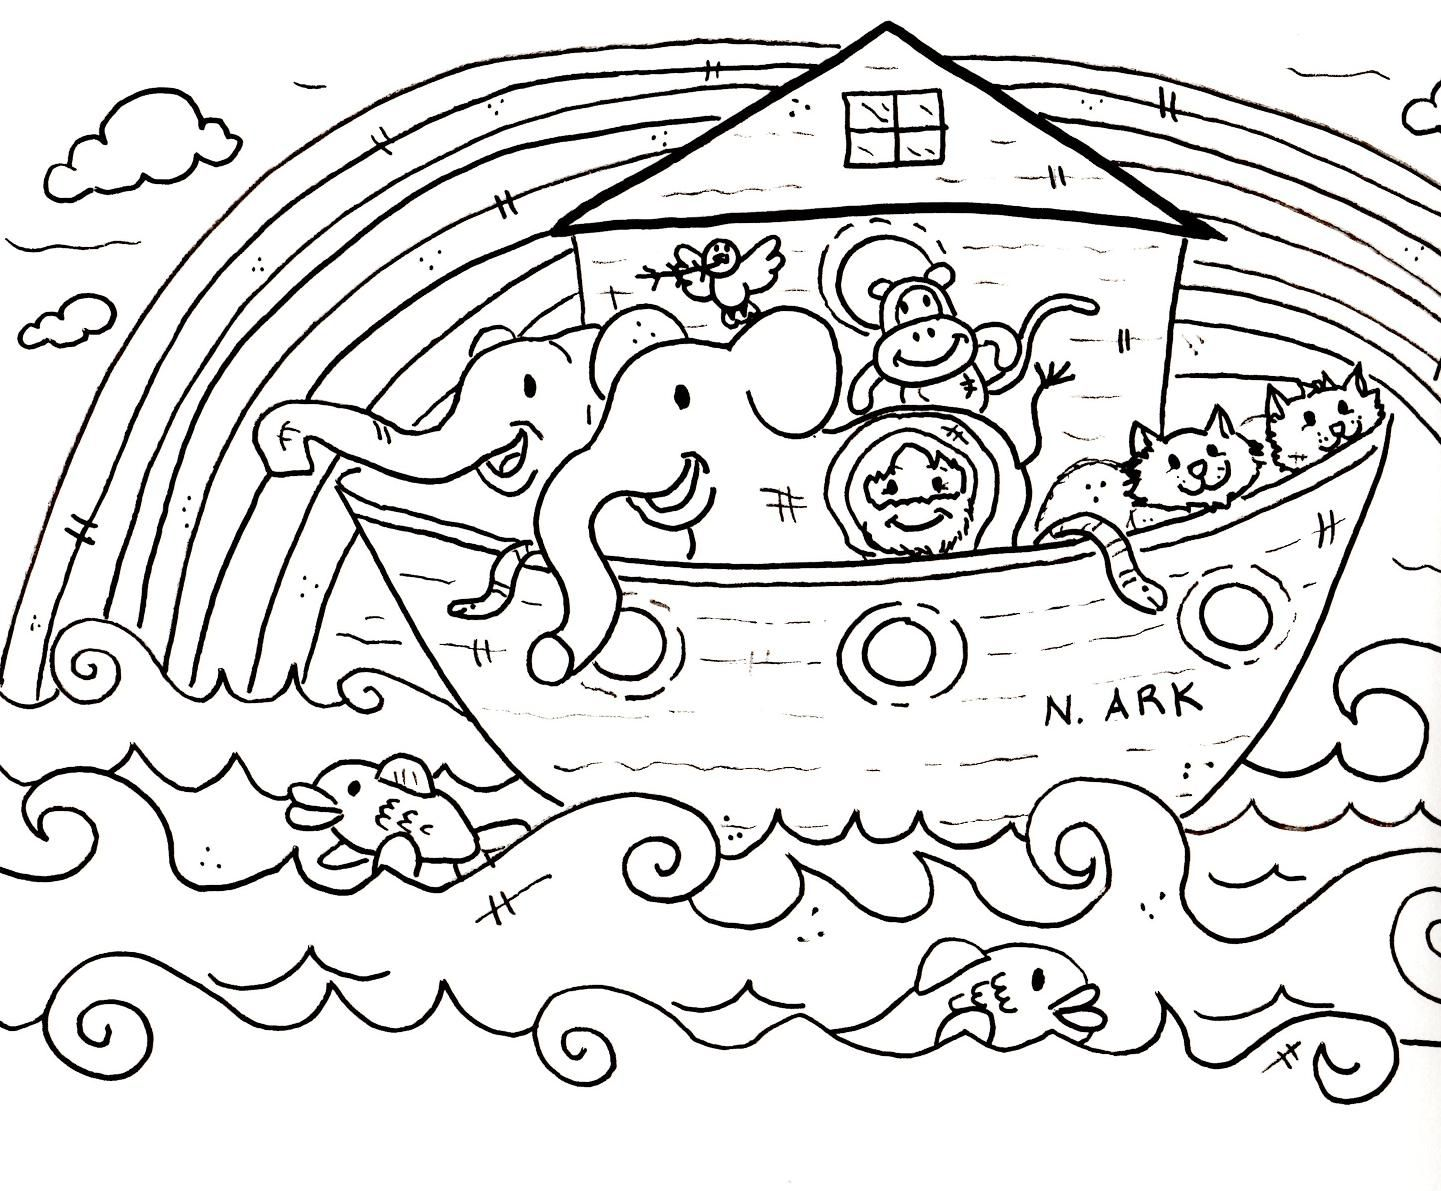 Toddler coloring pages printable free - Children Coloring Pages For Church Sunday School Coloring Pages Coloring Pages Free Preschool Coloring Sheets